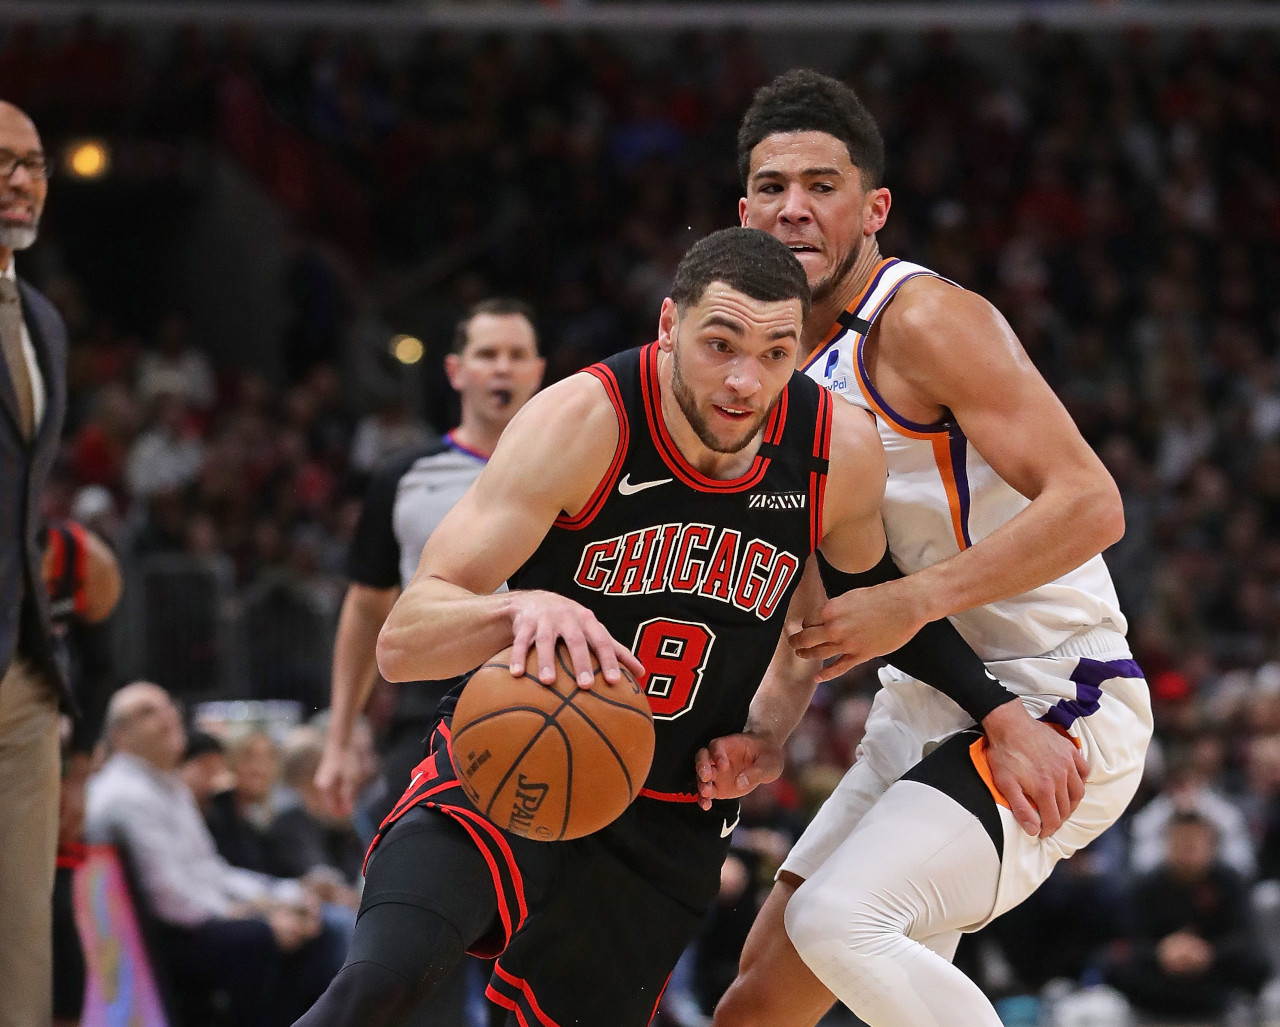 Zach LaVine vs. Devin Booker